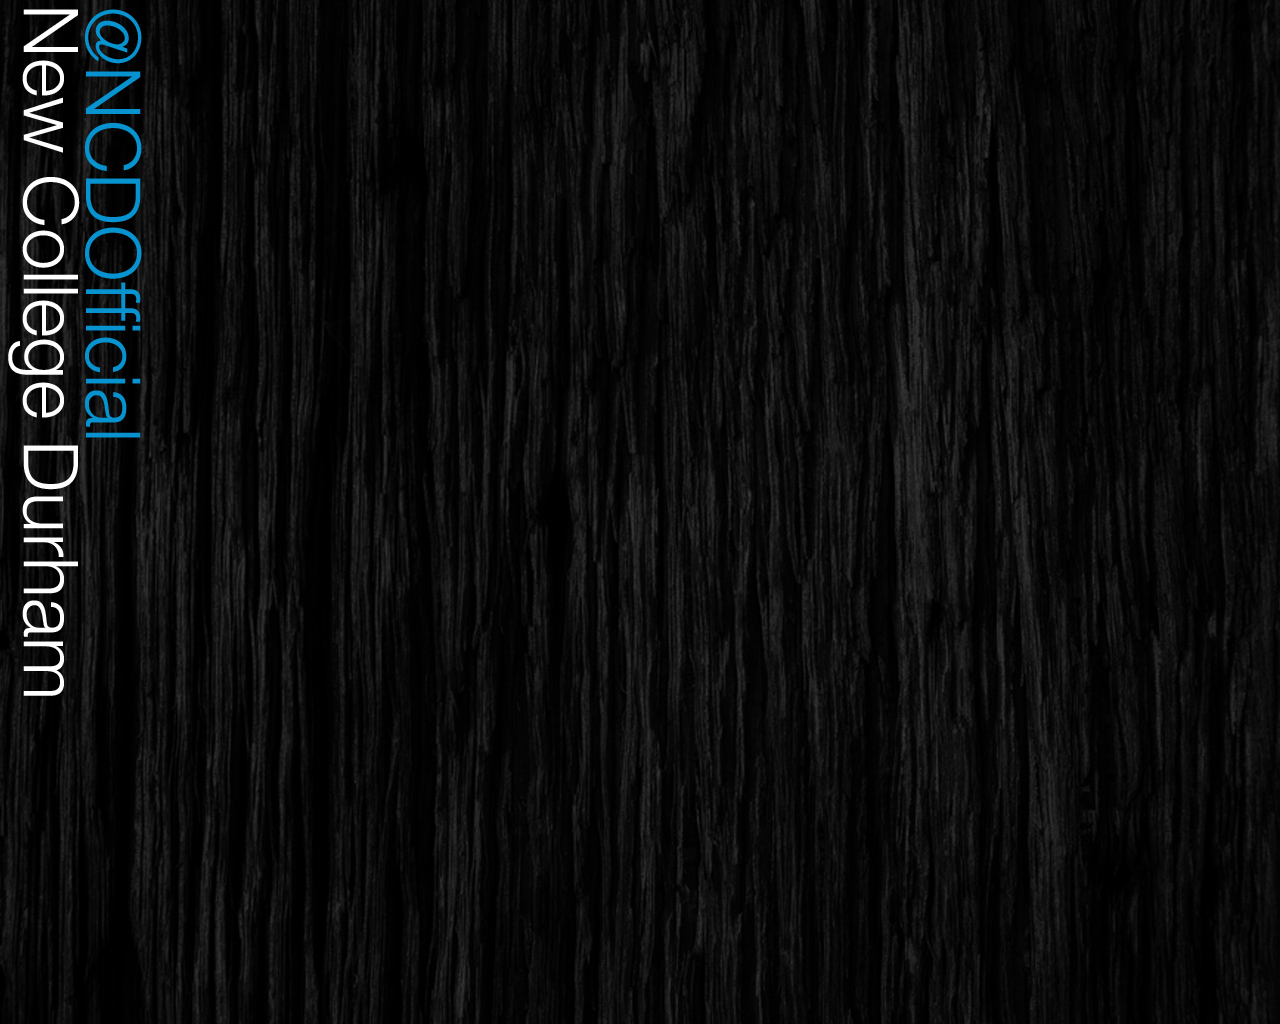 Boy Backgrounds For Tumblr Tumblr Backgrounds For Boys